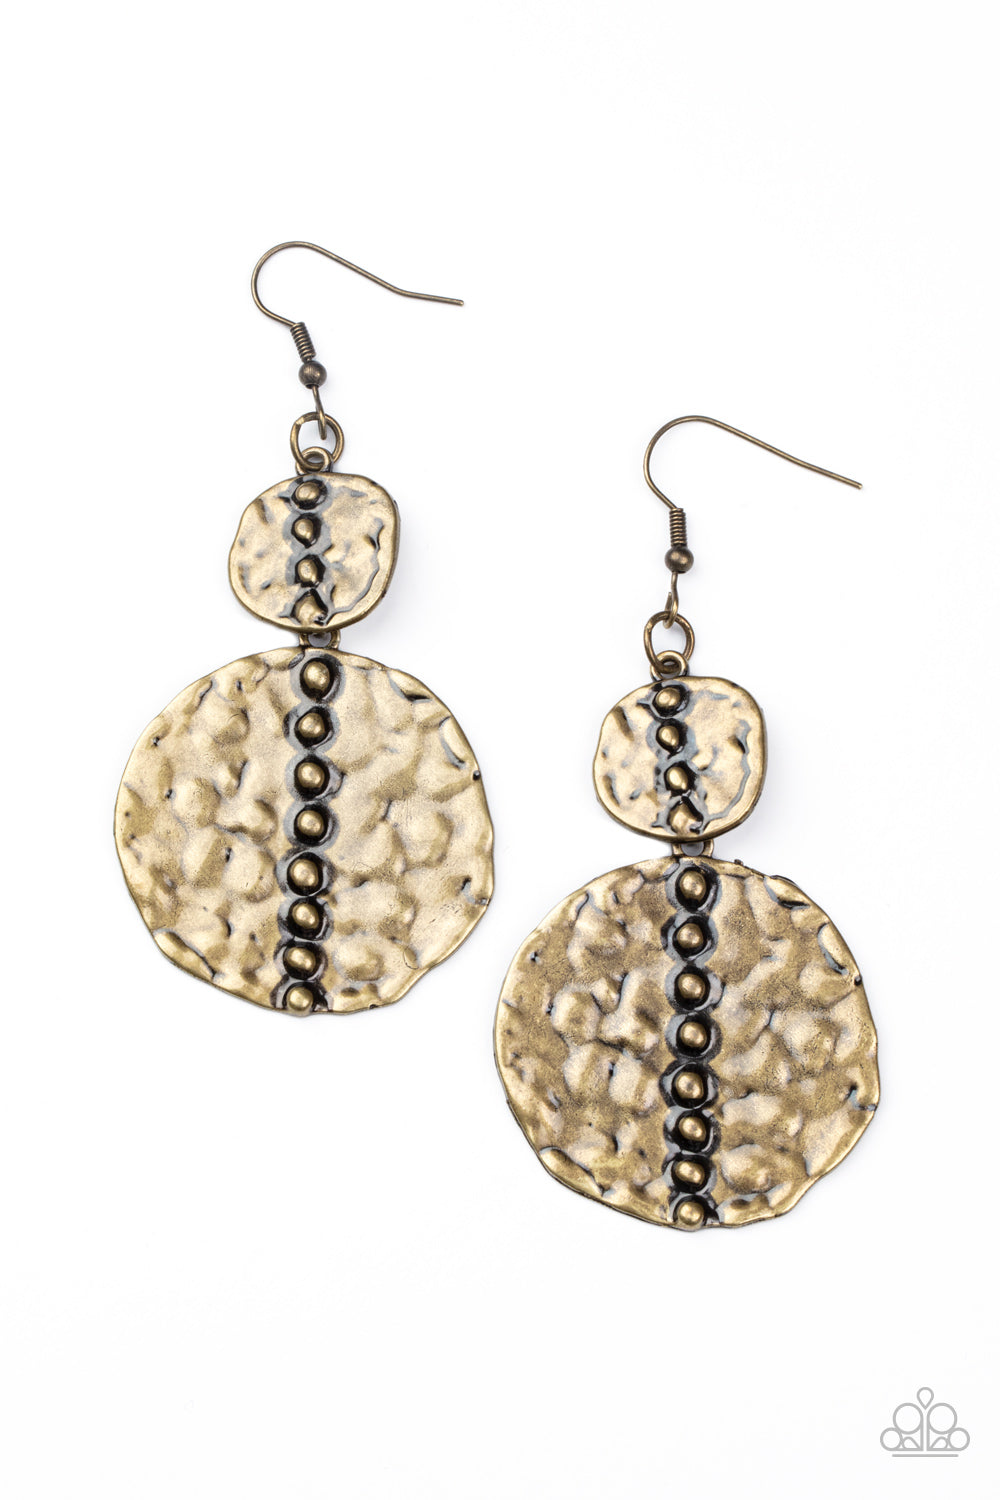 Paparazzi Metro Metalhead - Brass Earrings